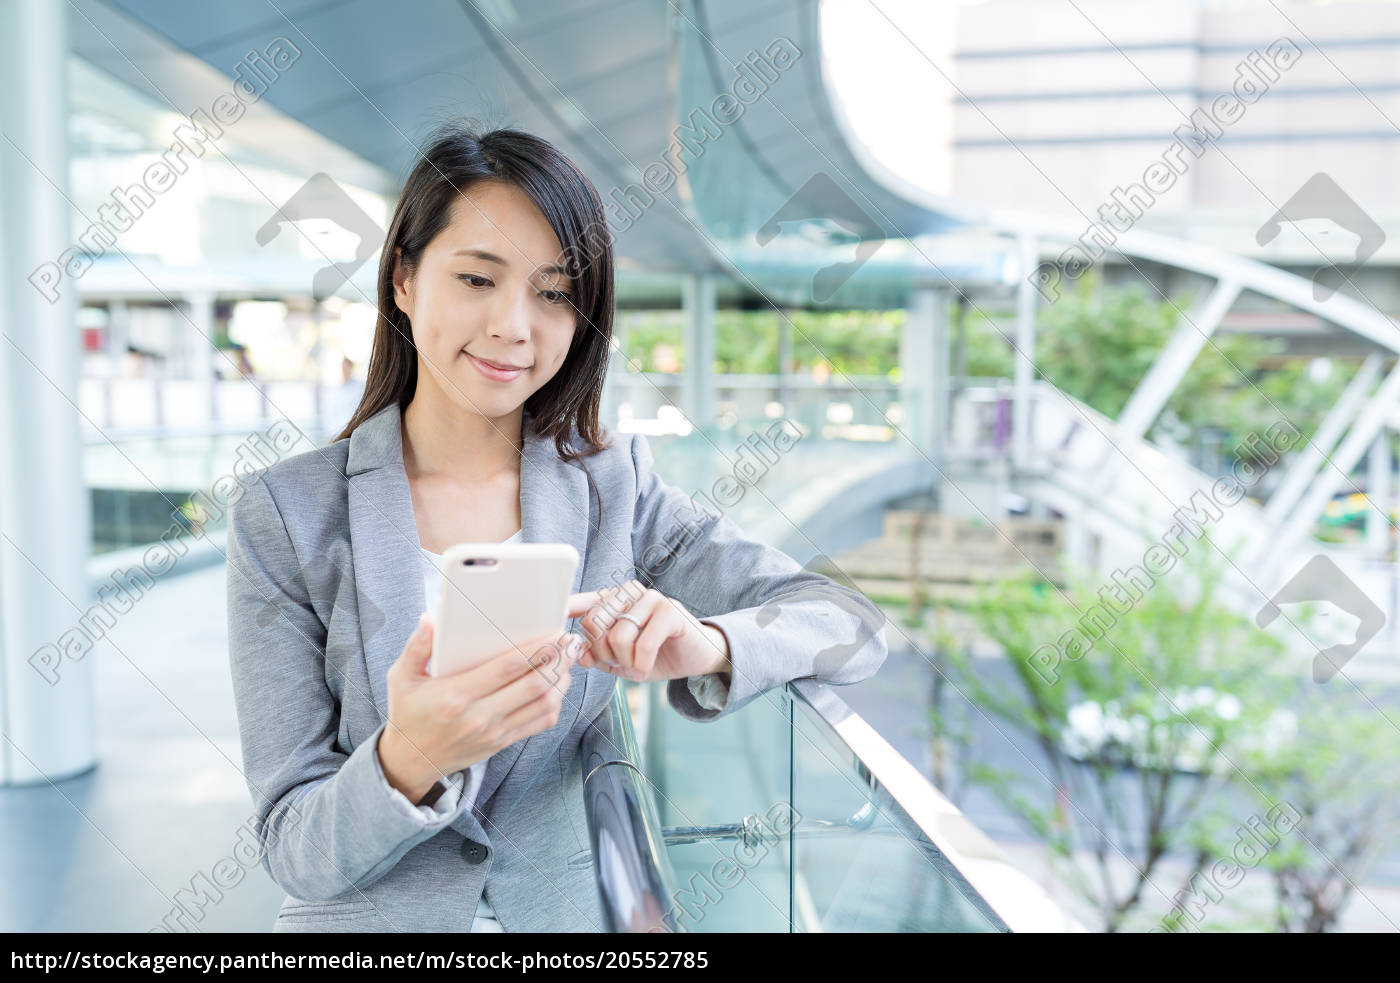 businesswoman, use, of, cellphone - 20552785